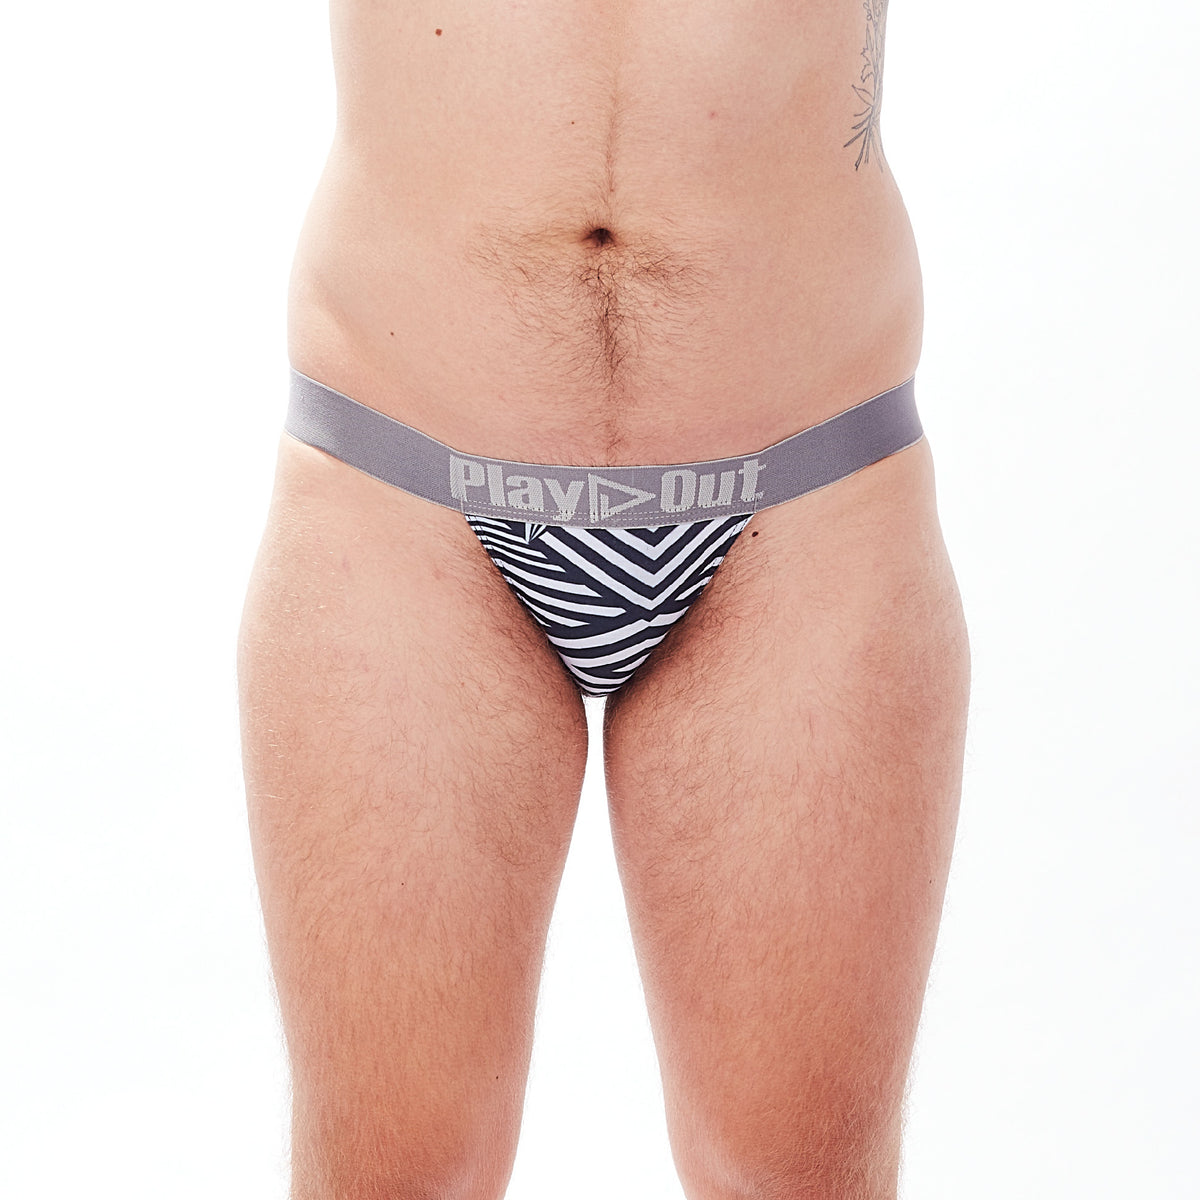 Play Out Apparel thong underwear in Mazie black and white print front S-5X